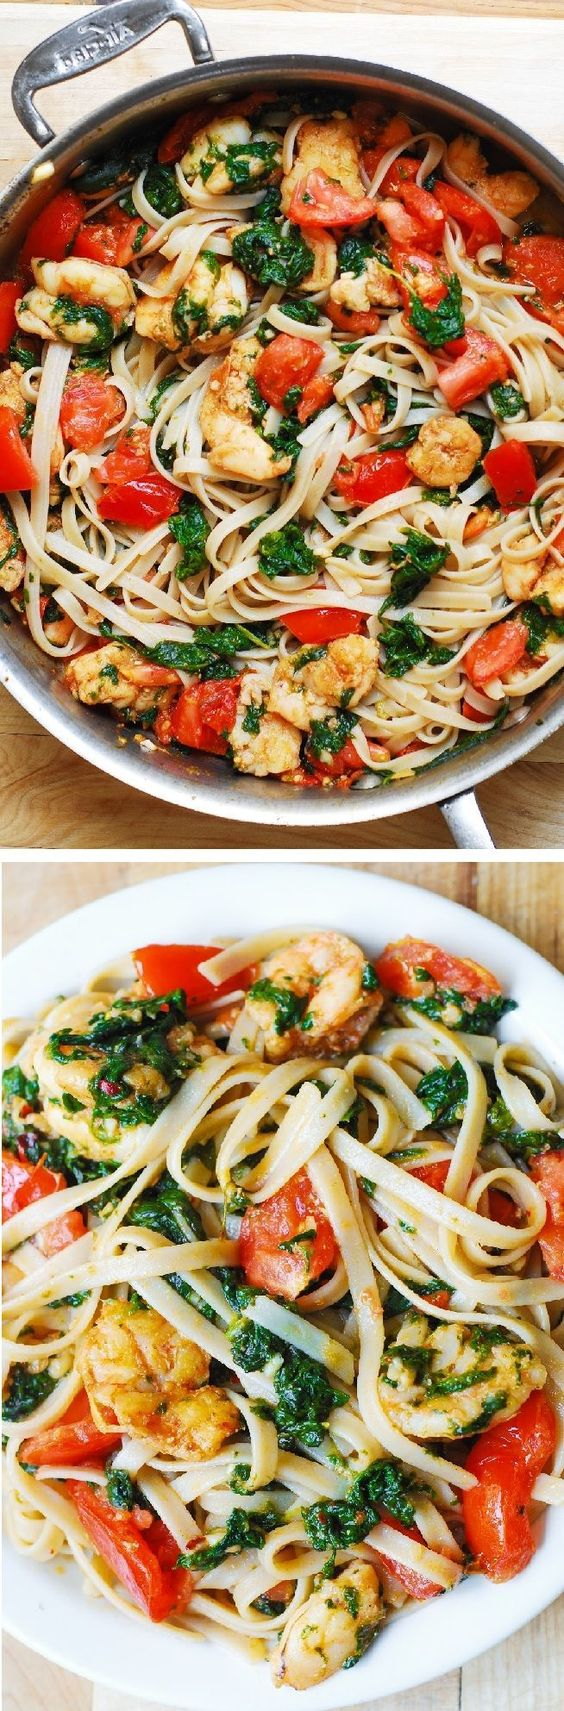 Shrimp, fresh tomatoes, and spinach with fettuccine pasta in garlic butter sauce. So refreshing, spicy, and Italian!